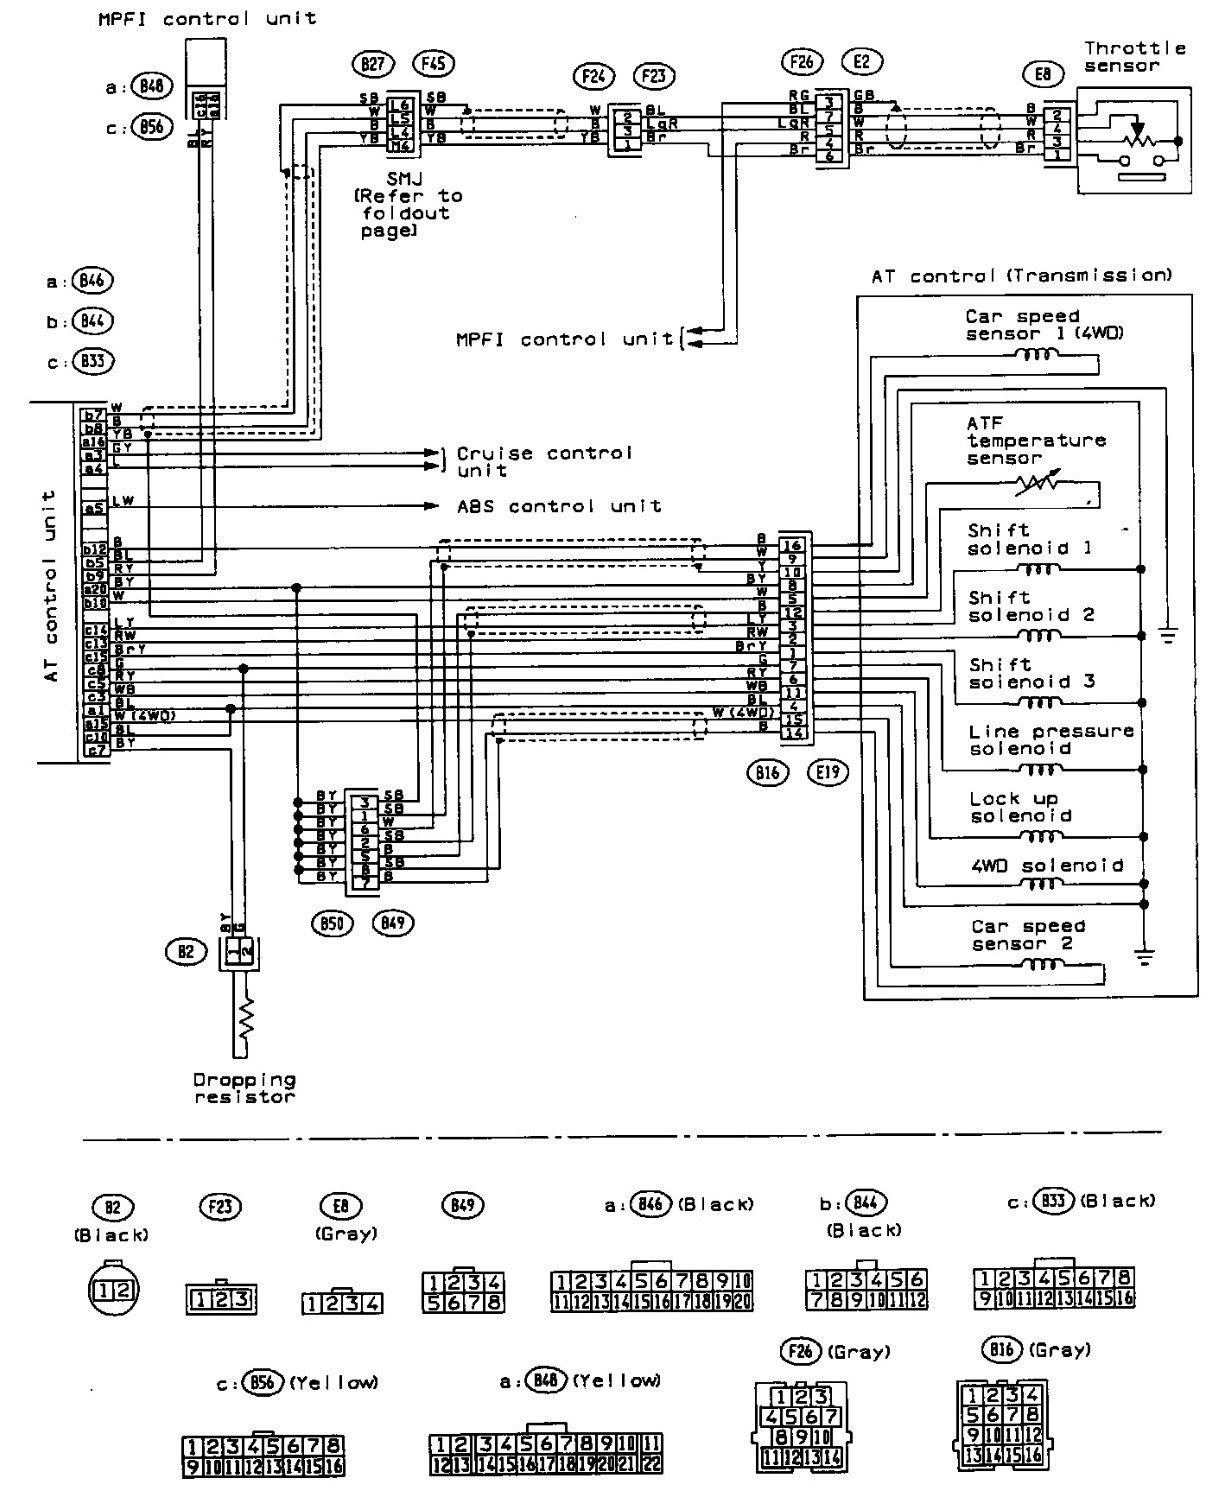 Subaru Svx Stereo Wiring Diagram Completed Wiring Diagram Wheel H Bertarellisavino It